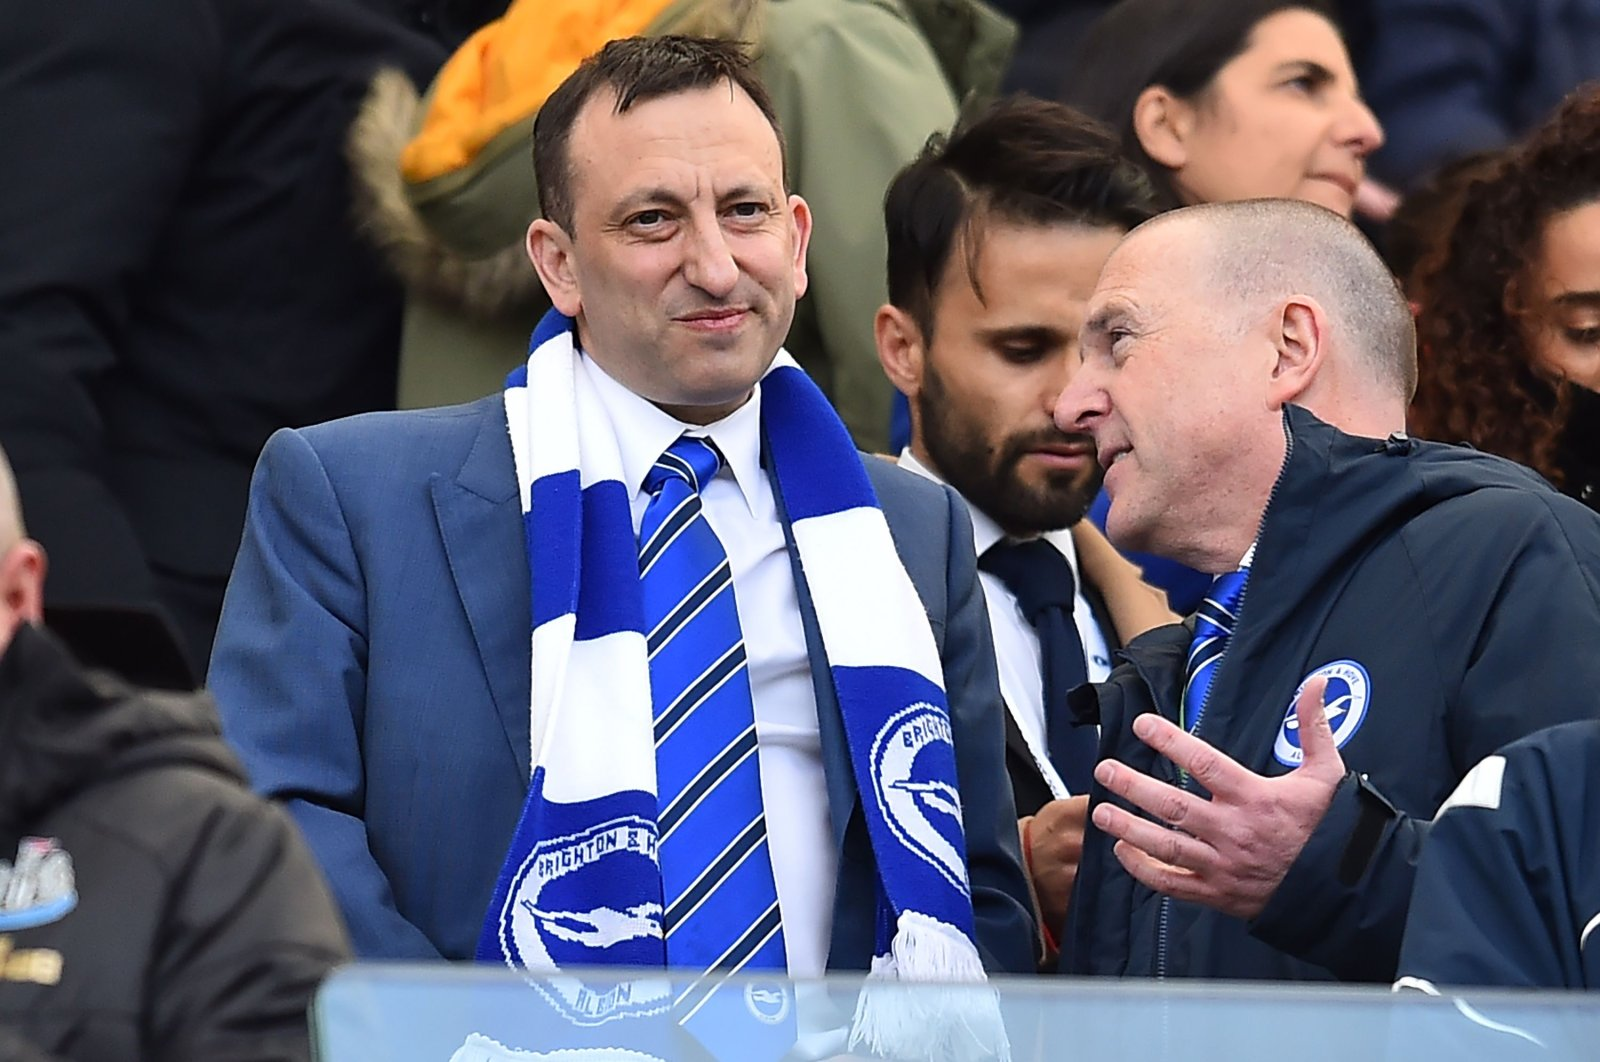 Tony Bloom (L) takes his seat before a Premier League match in Brighton, England, April 27, 2019. (AFP Photo)